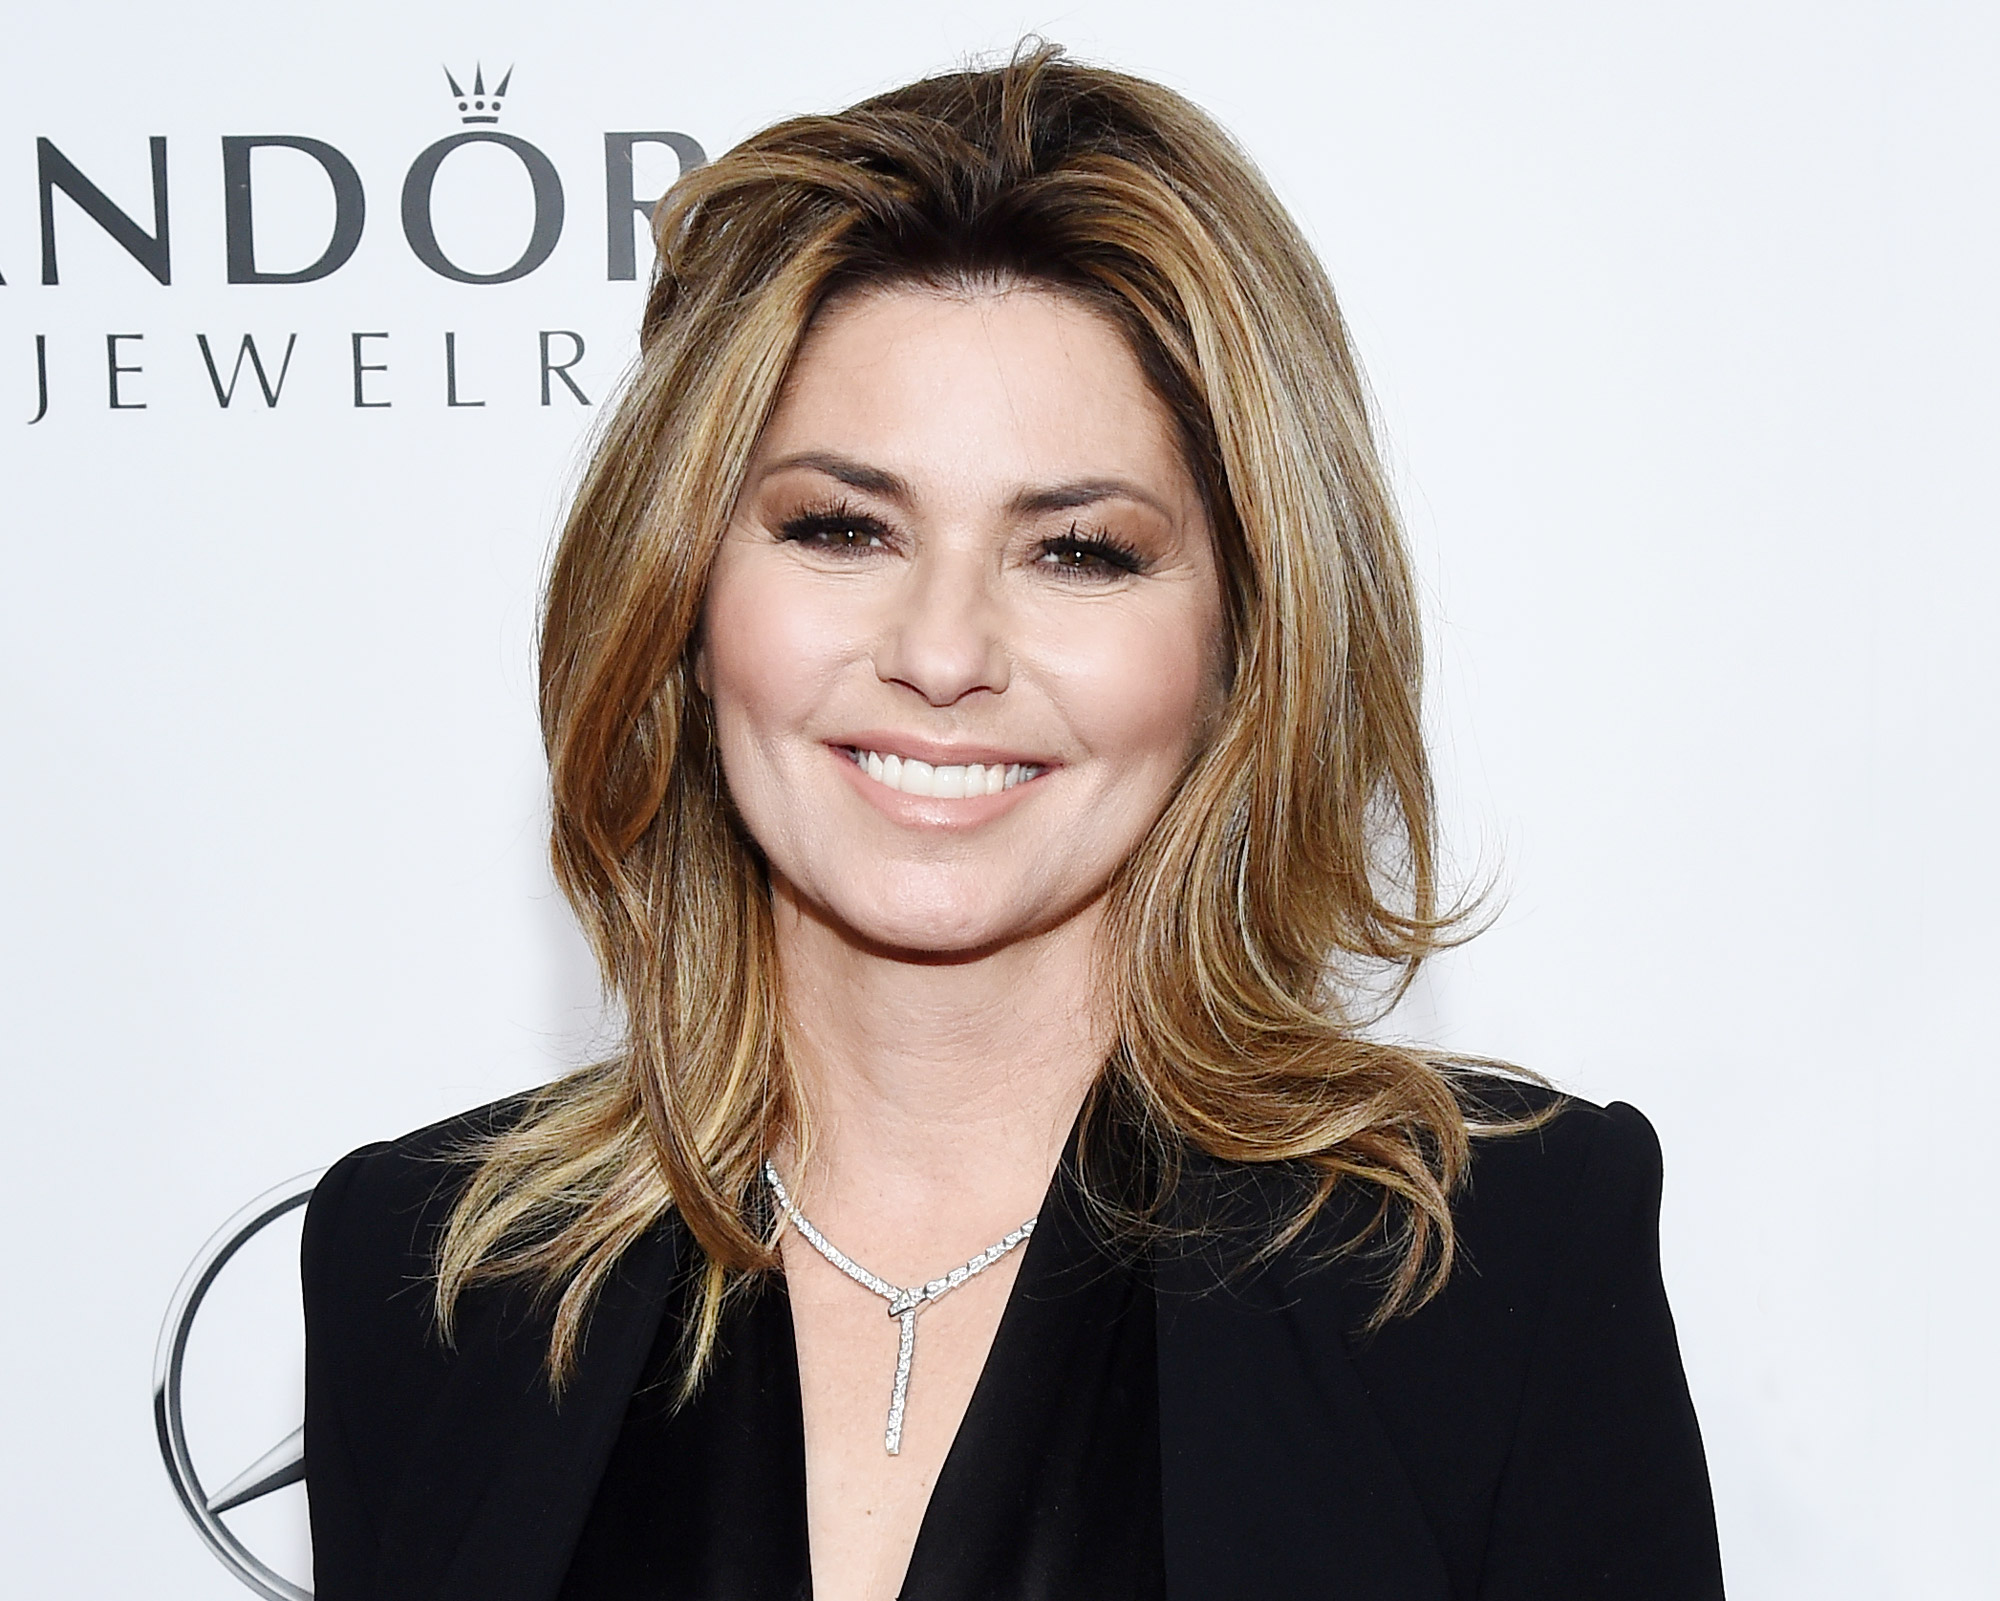 Shania Twain's Beauty Transformation Is Just as Epic as Her Biggest Hits